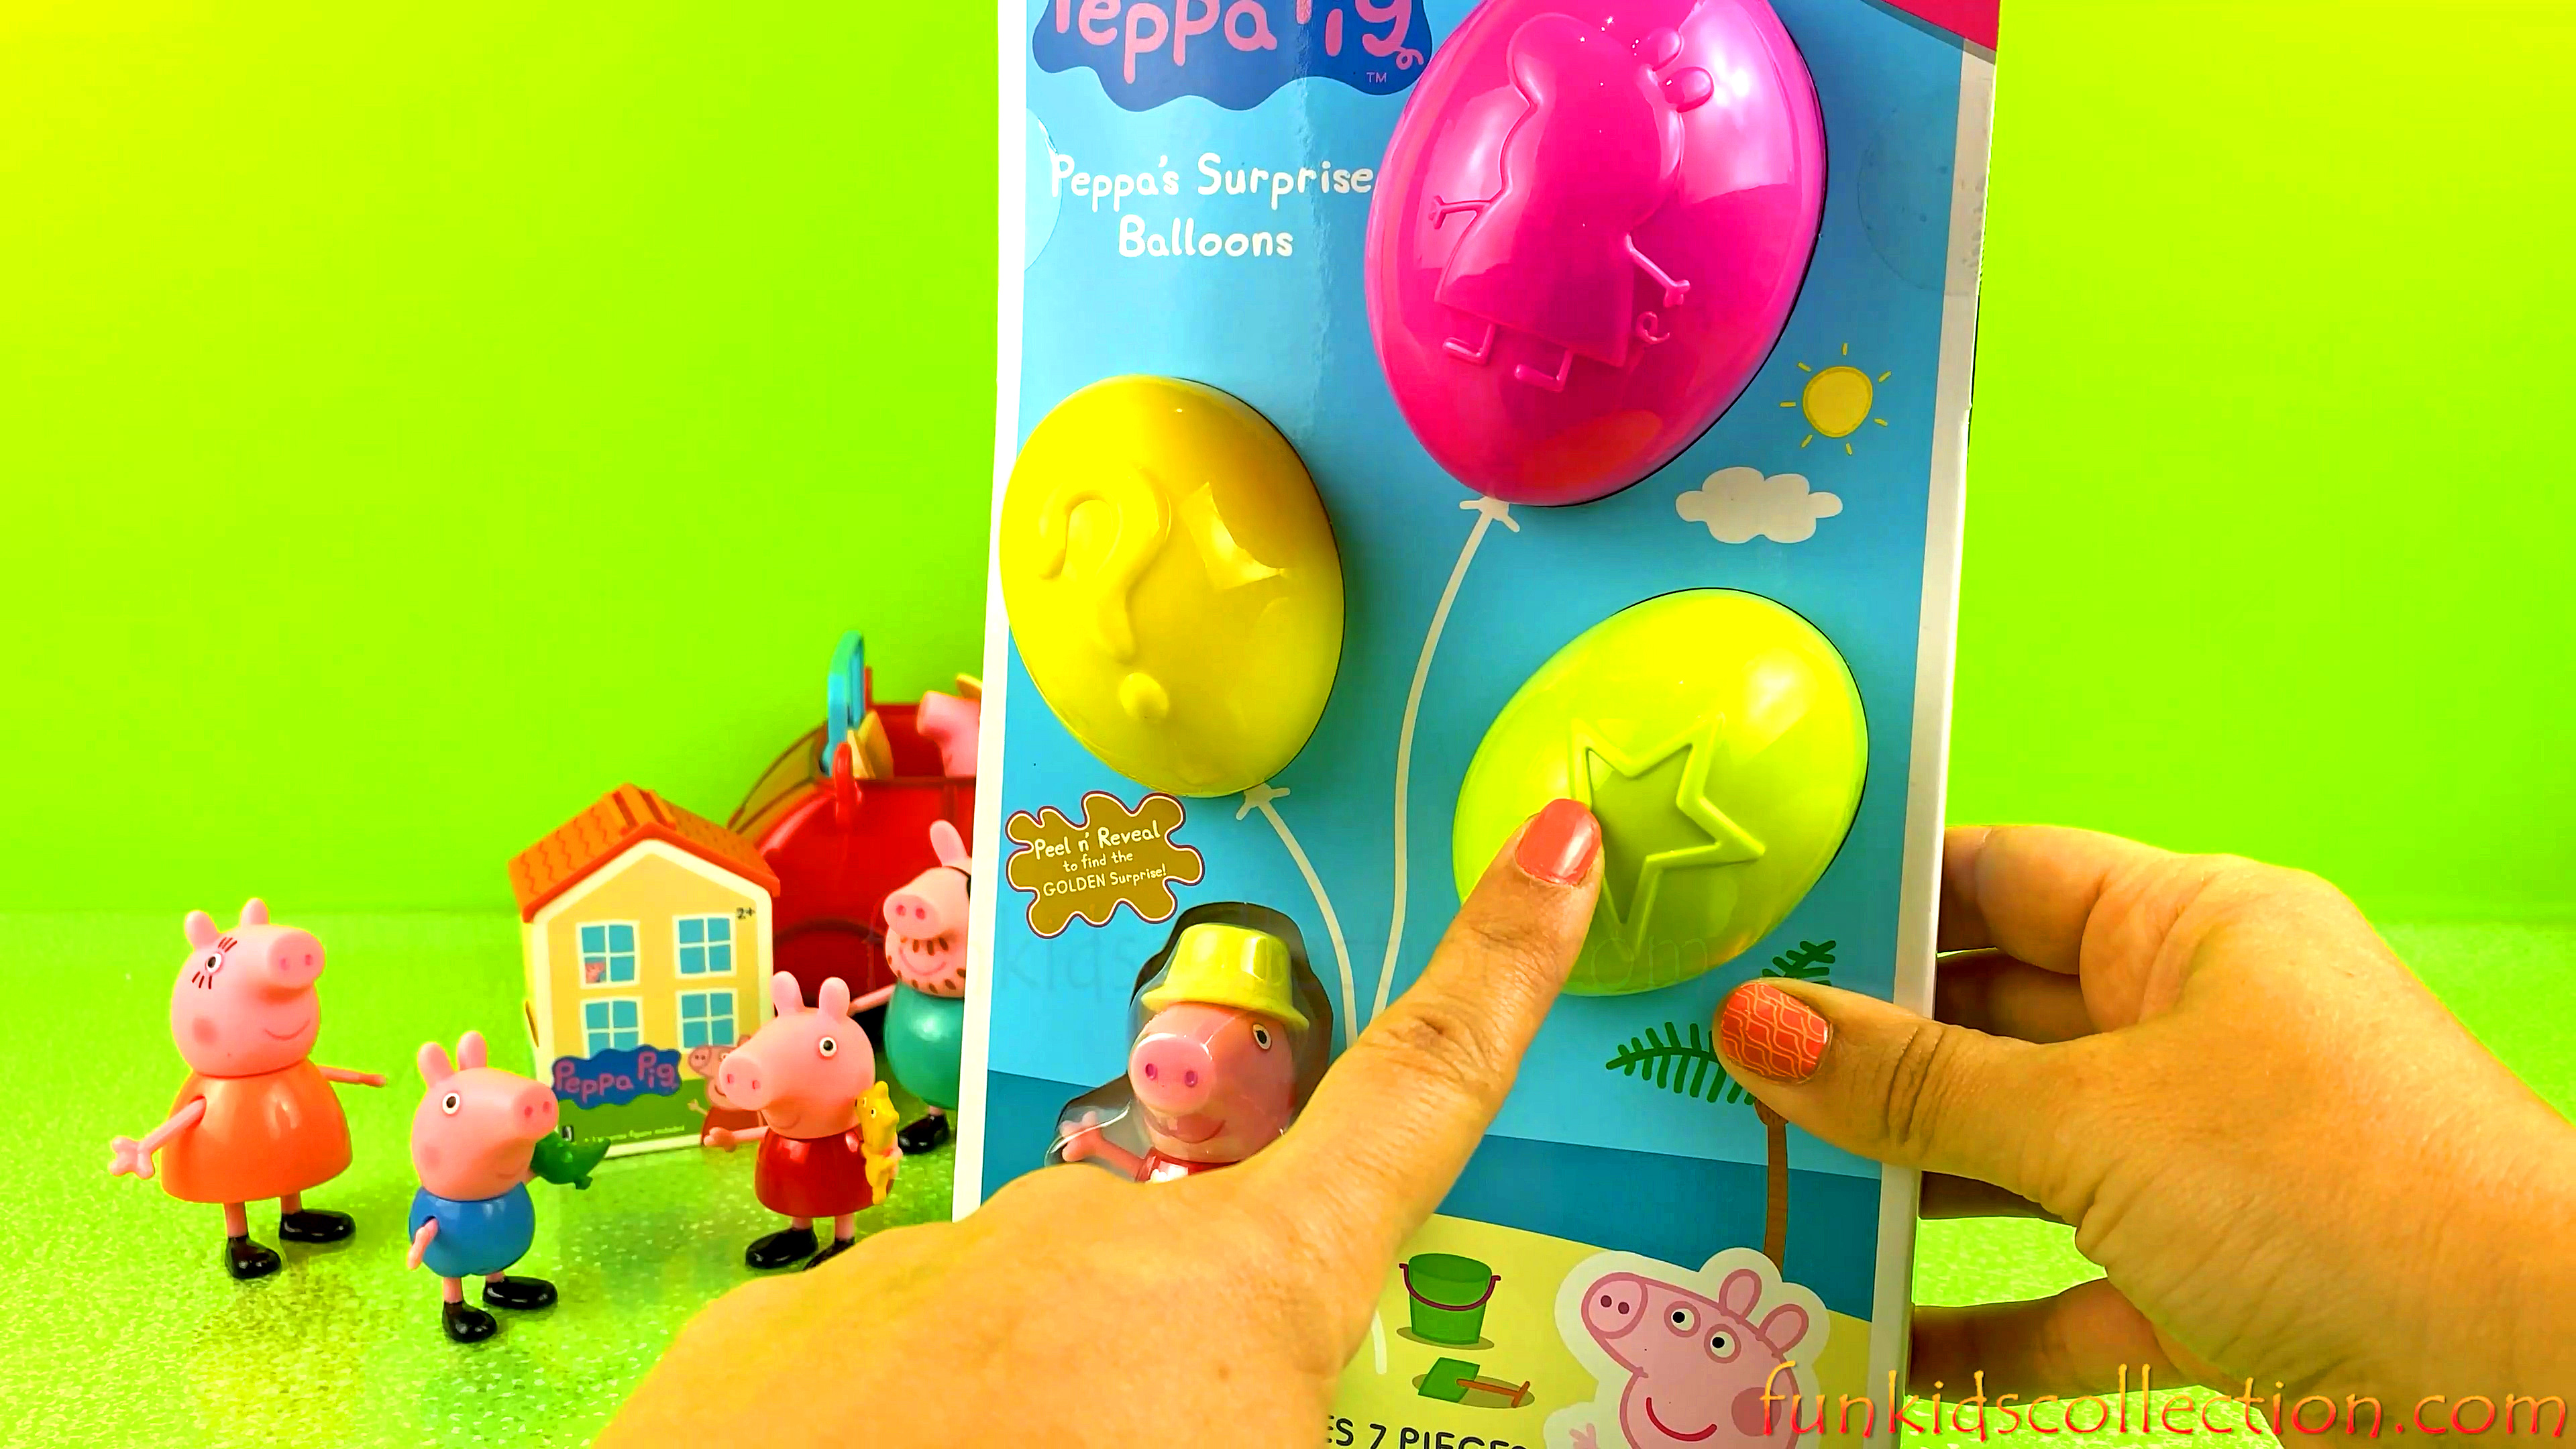 Peppa Pig Surprise Balloons Series 1 in the Beach| Peppa Pig Peal n' Reveal the Golden Surprise